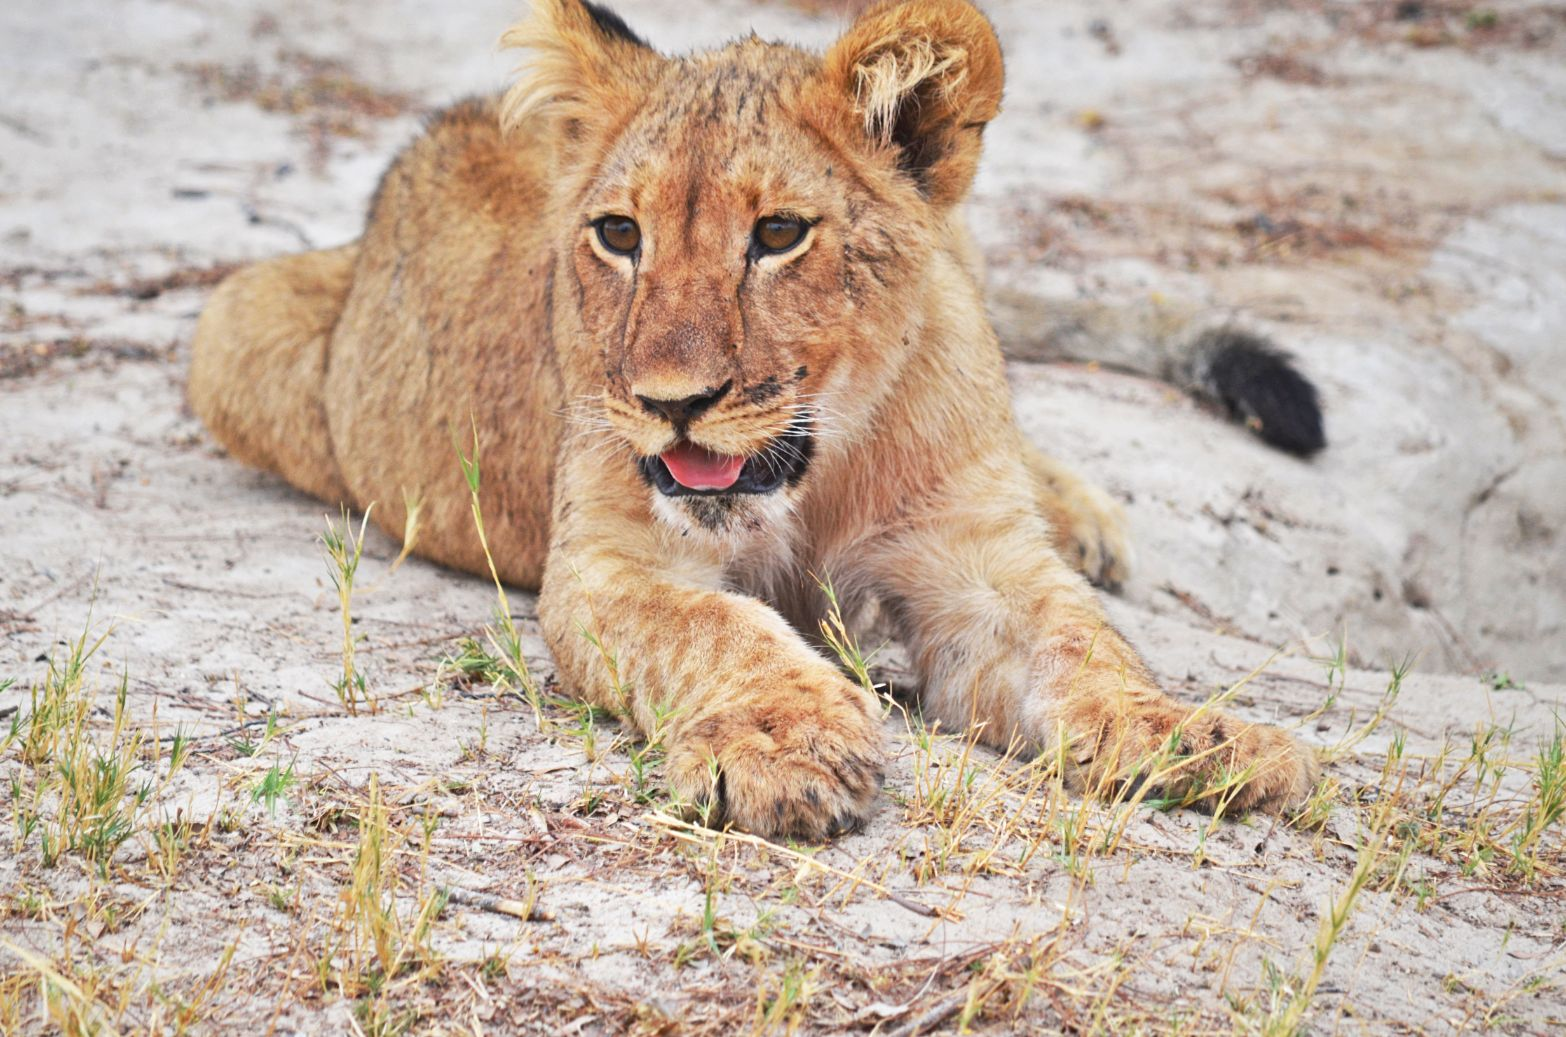 Lion cub after a meal